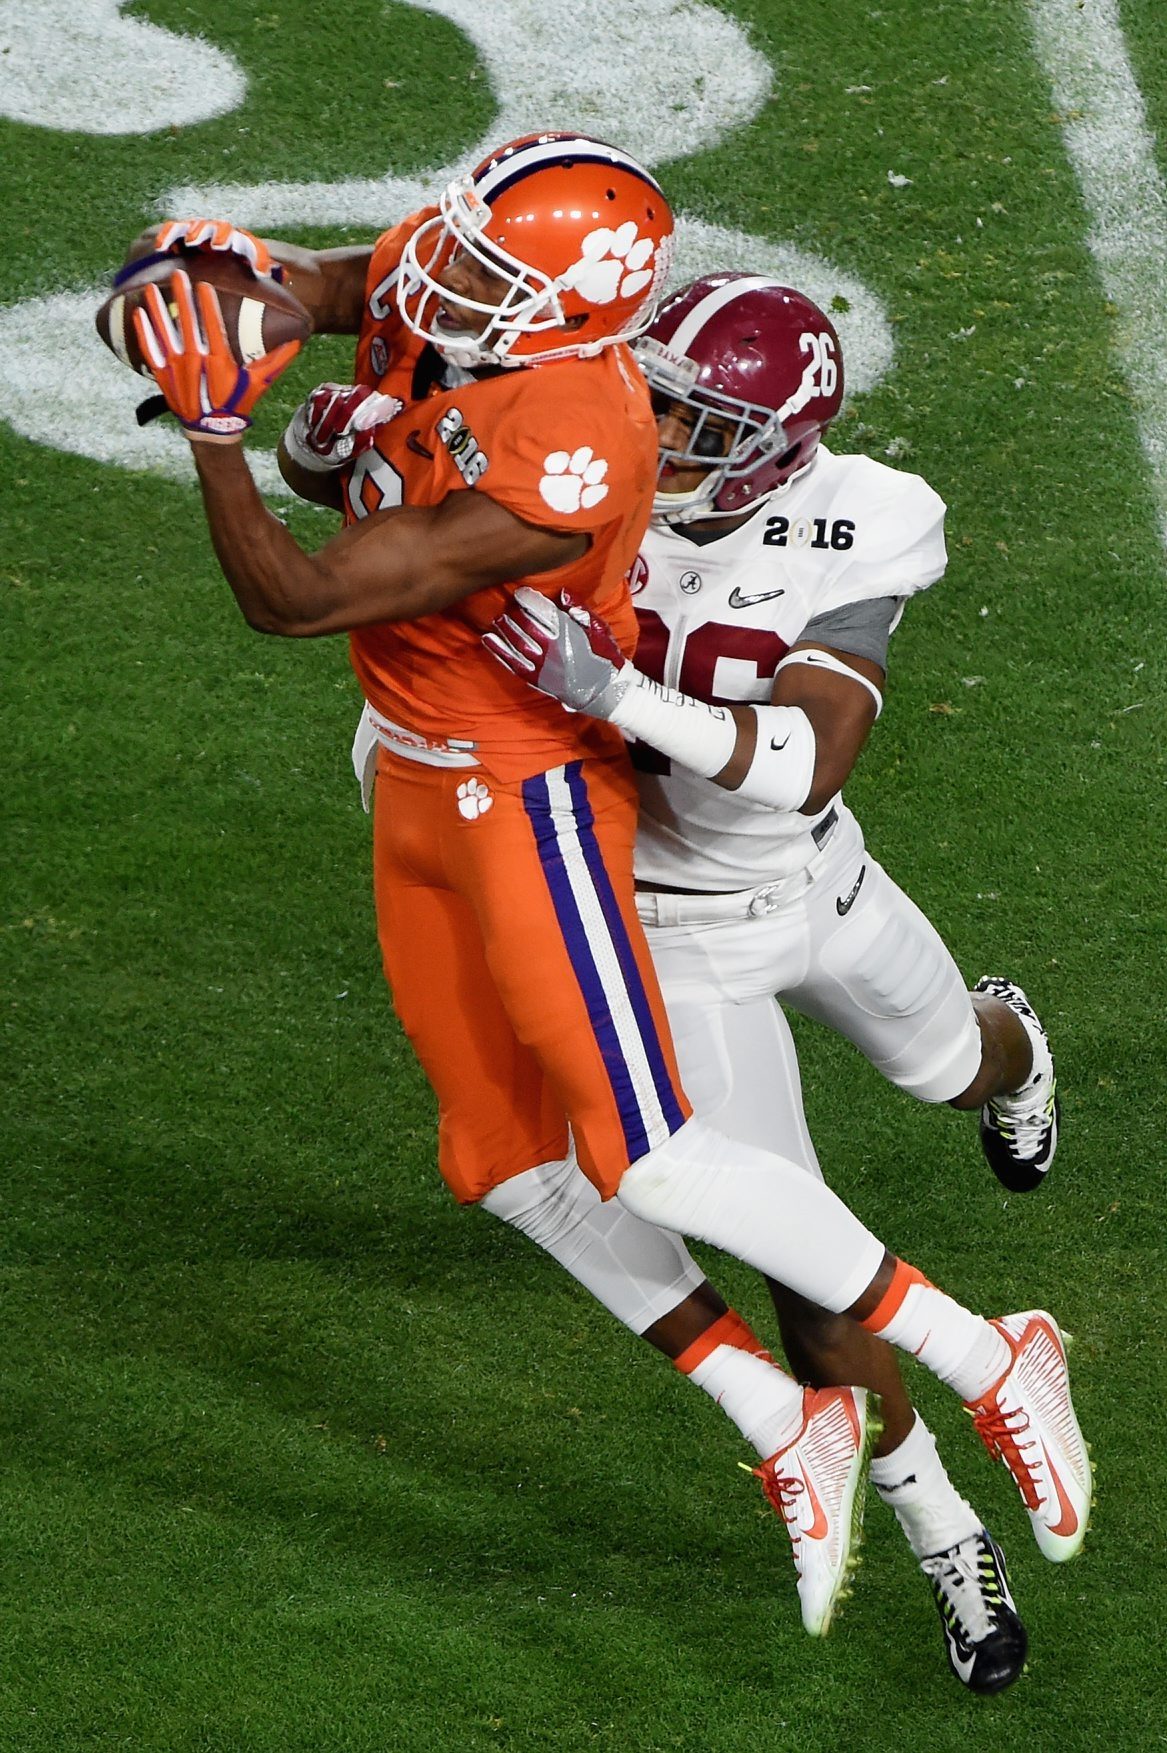 Charone Peake of Clemson could be on the Bills' radar at draft time. He's a close friend of Sammy Watkins.